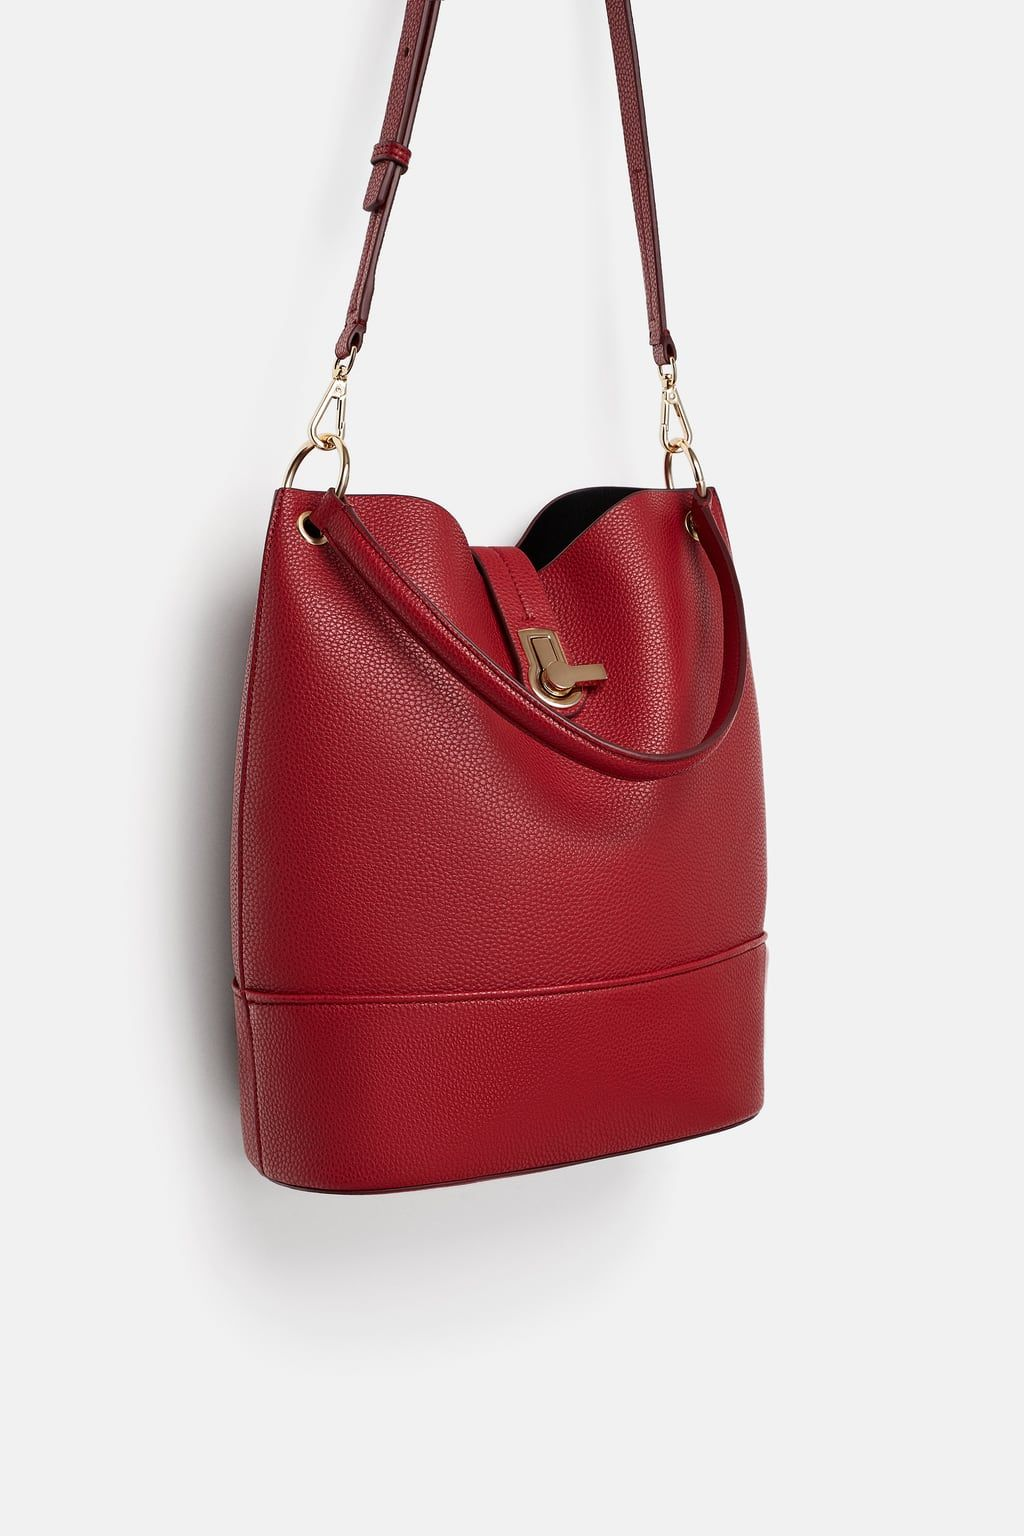 8c2fd1b1a93c7 Image 1 of BUCKET BAG WITH METAL CLASP from Zara